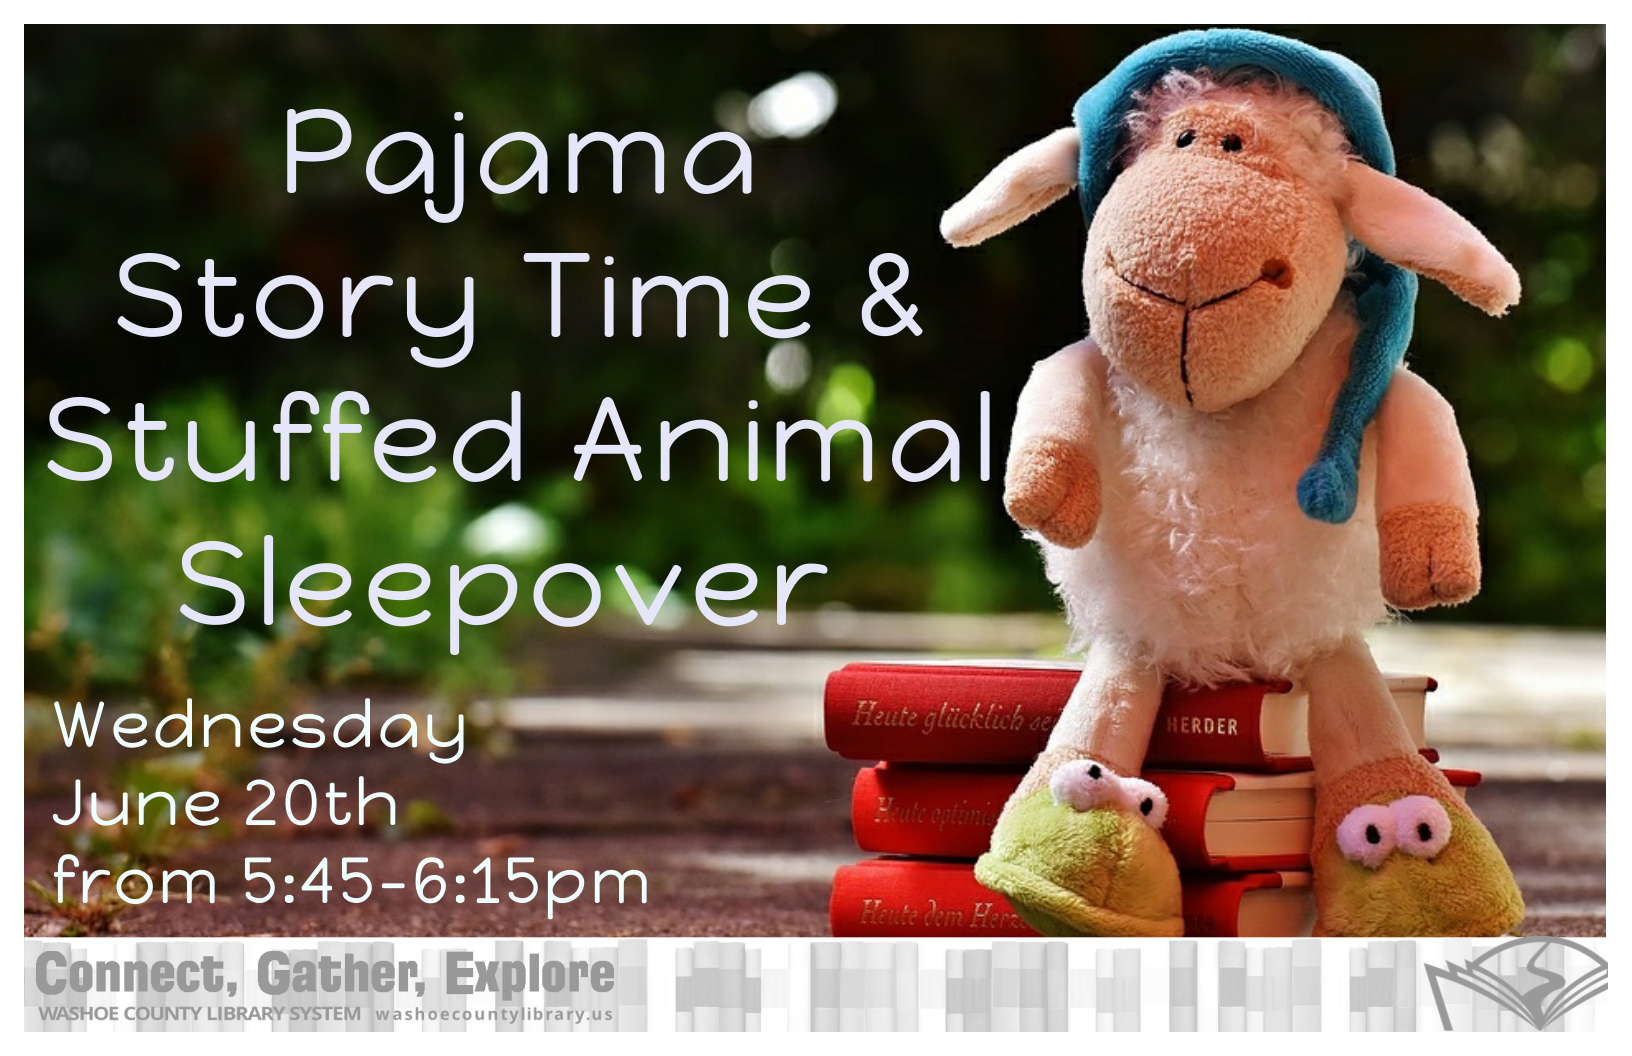 Pajama Story Time and Stuffed Animal Sleepover